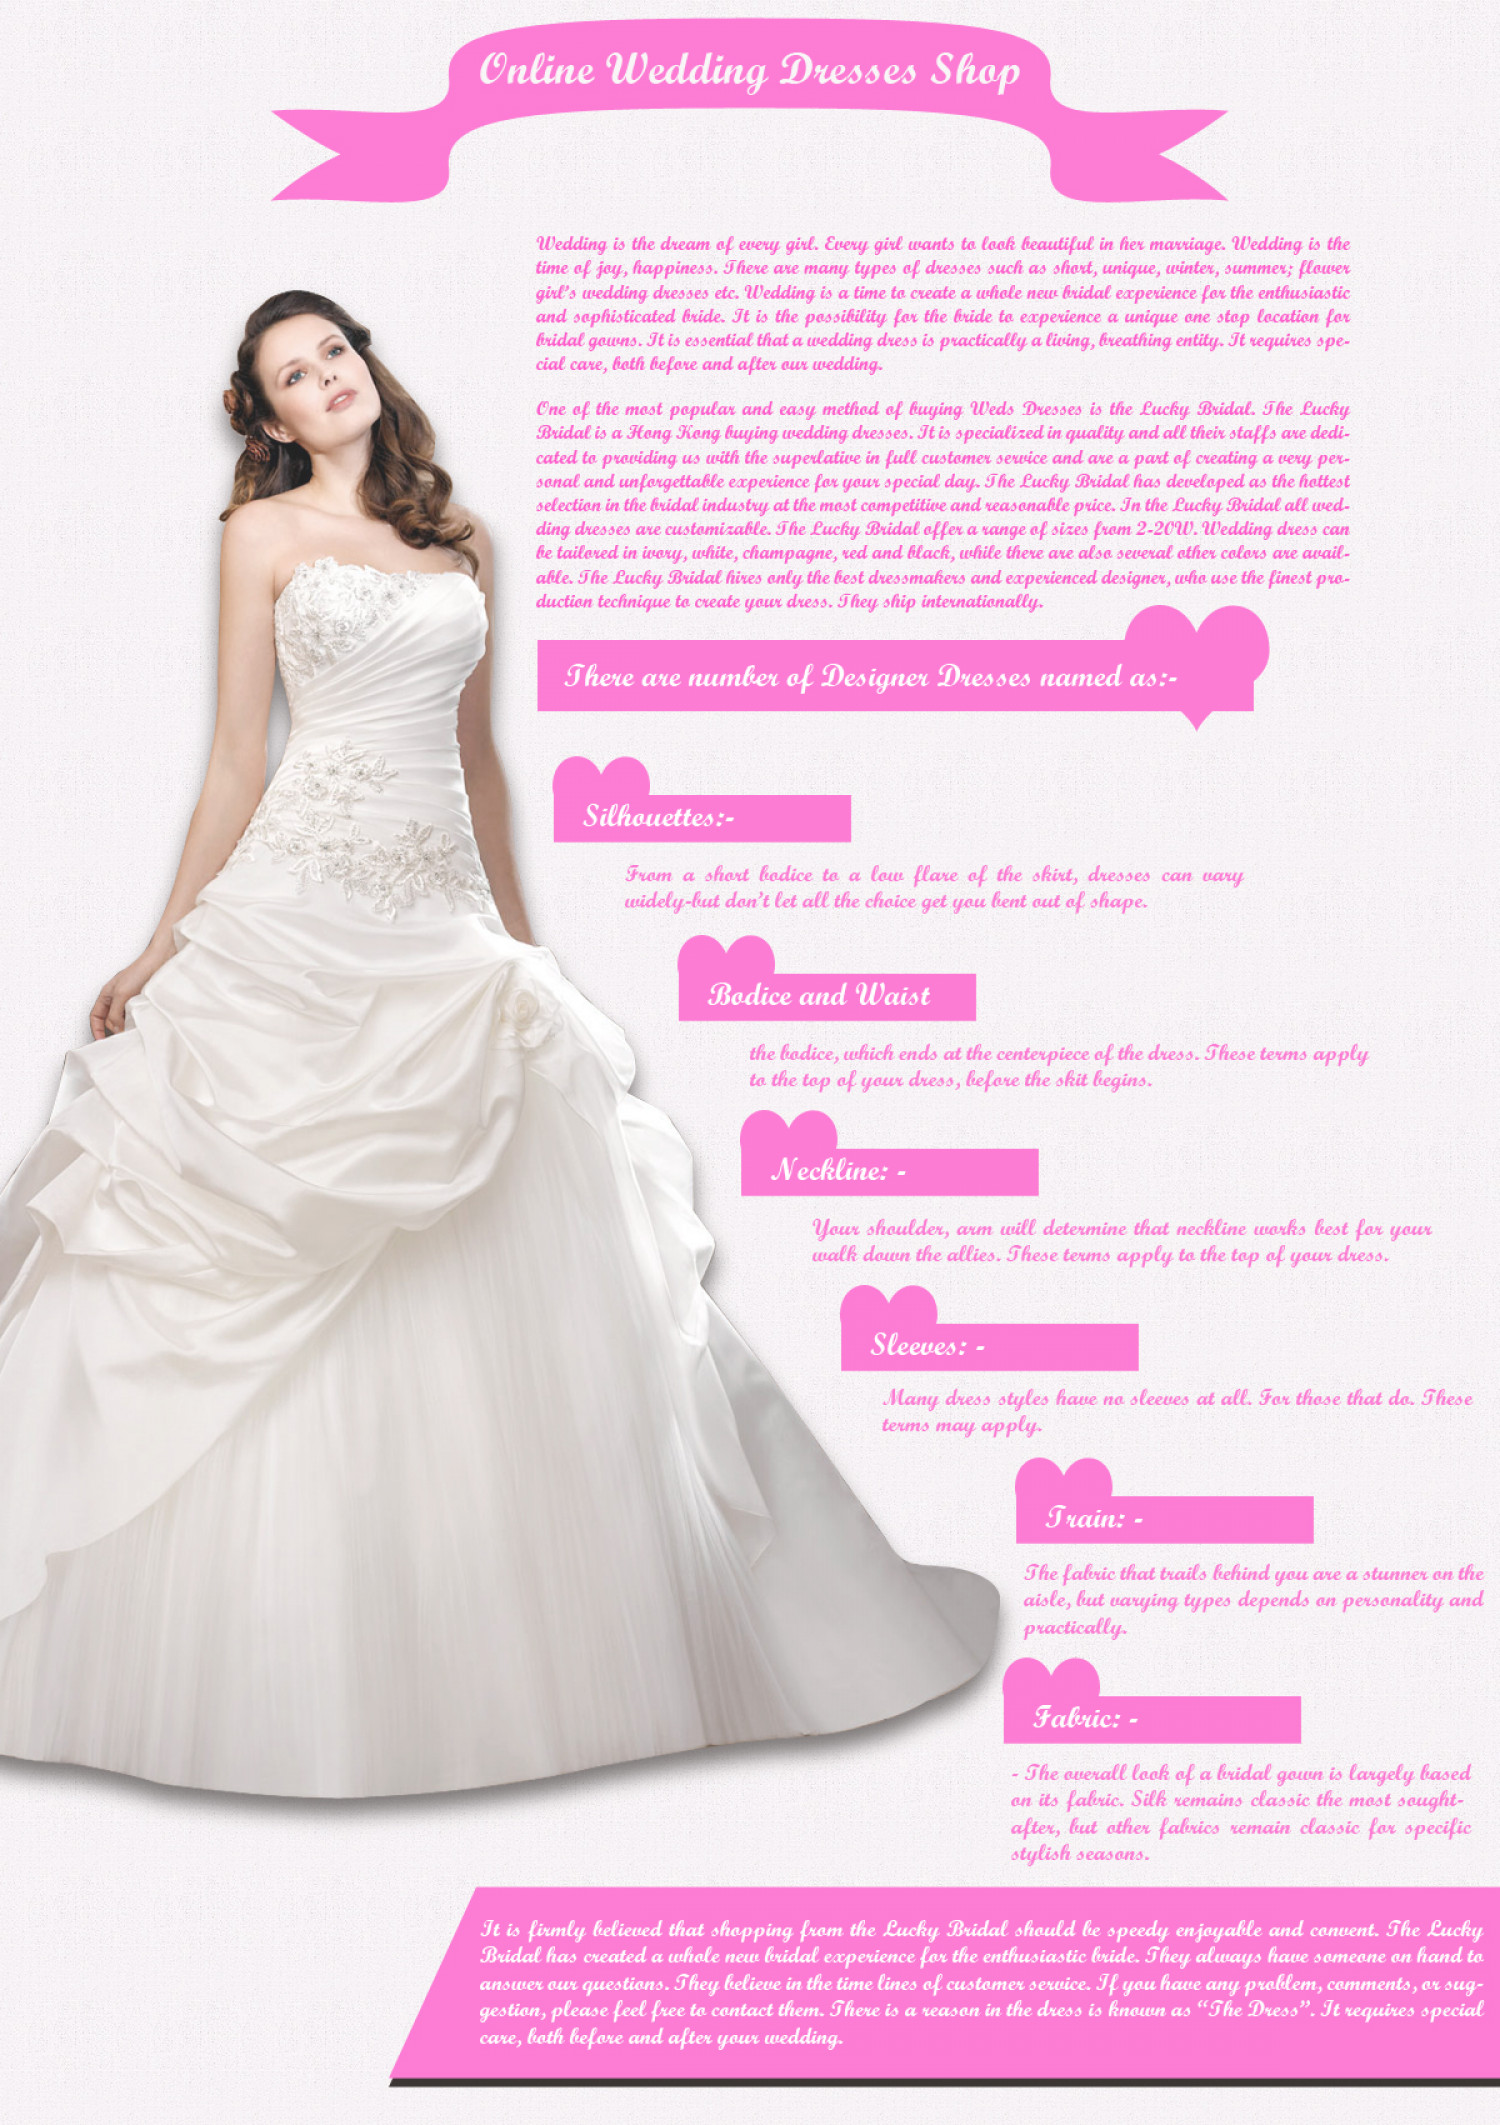 Wedding Dresses Australia Online Shop - Wedding Dresses Asian